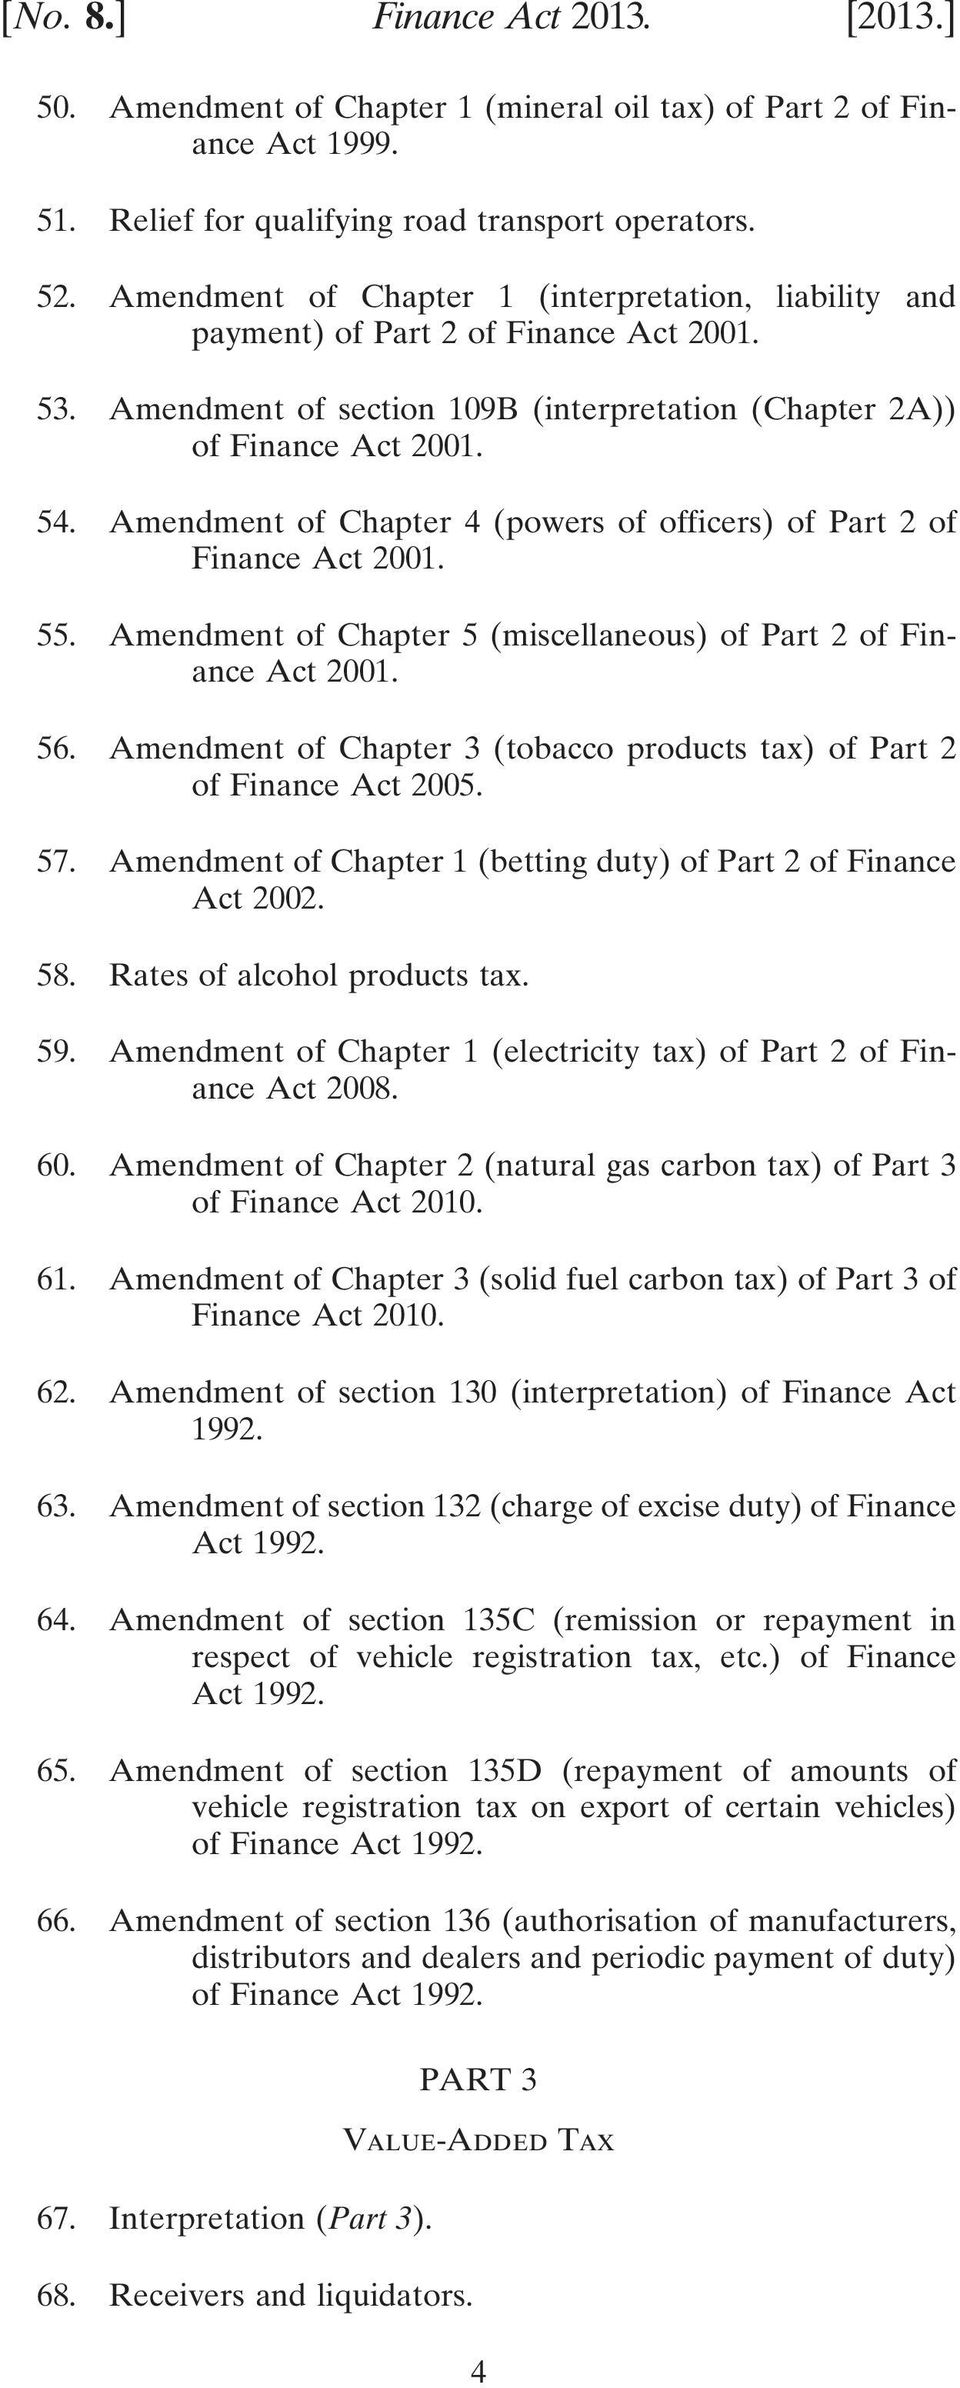 Amendment of Chapter 4 (powers of officers) of Part 2 of Finance Act 2001. 55. Amendment of Chapter 5 (miscellaneous) of Part 2 of Finance Act 2001. 56.